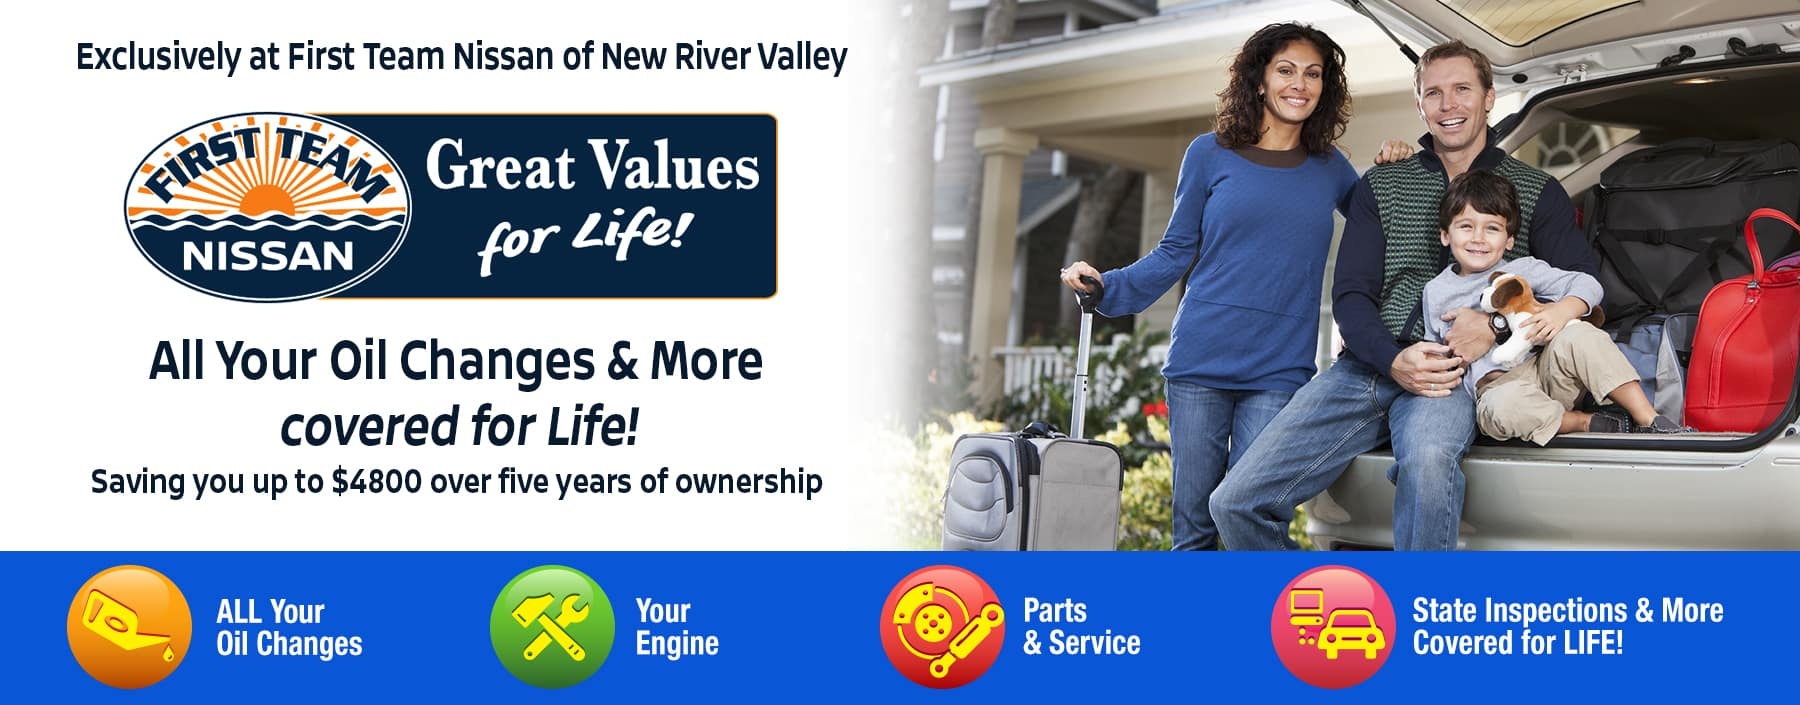 Great Values for Life